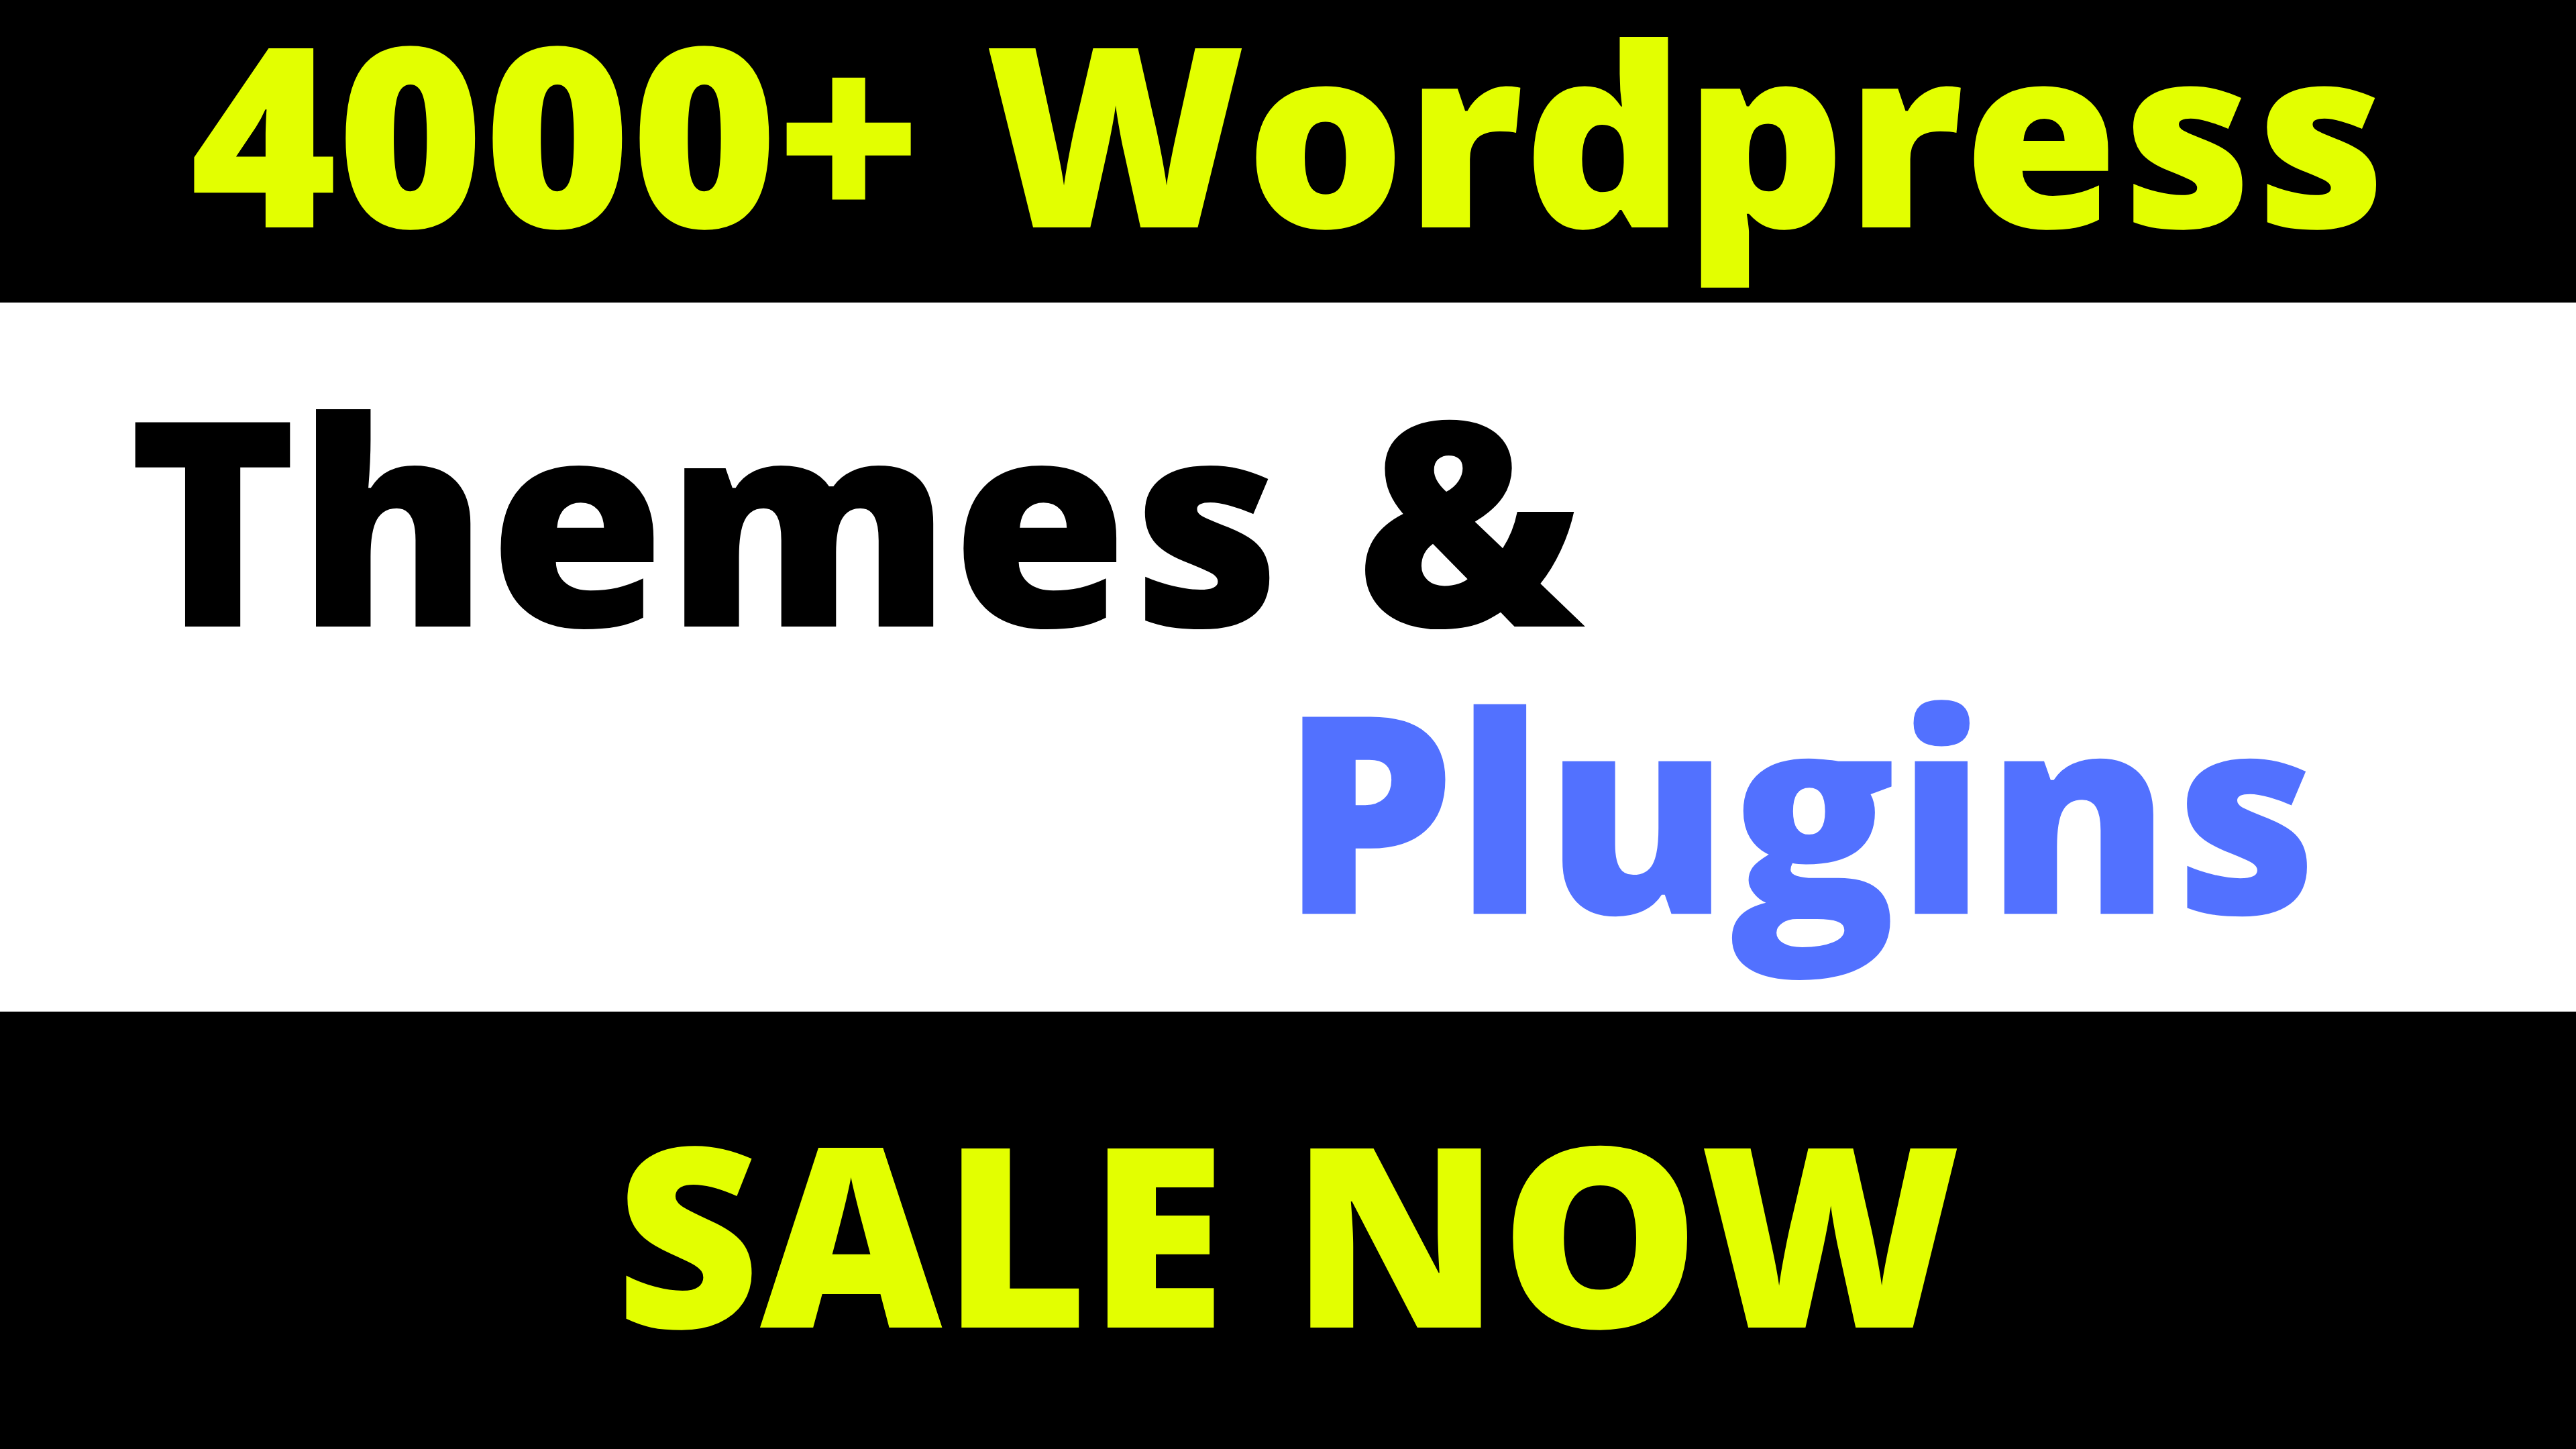 4000+ Wordpress Themes & Plugins For Your Site